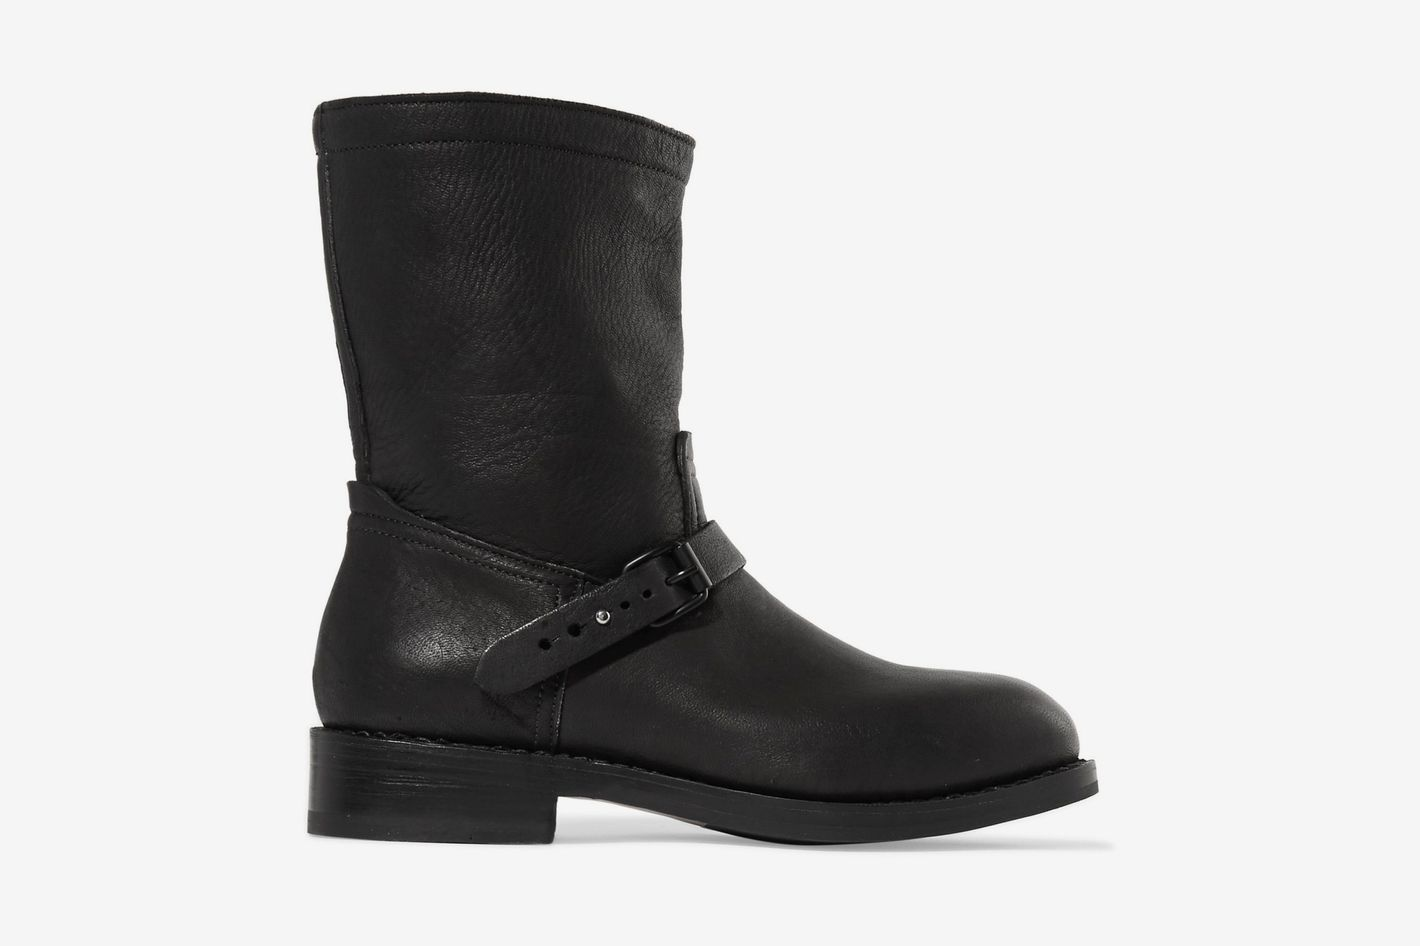 Rag & Bone Textured Leather Ankle Boots